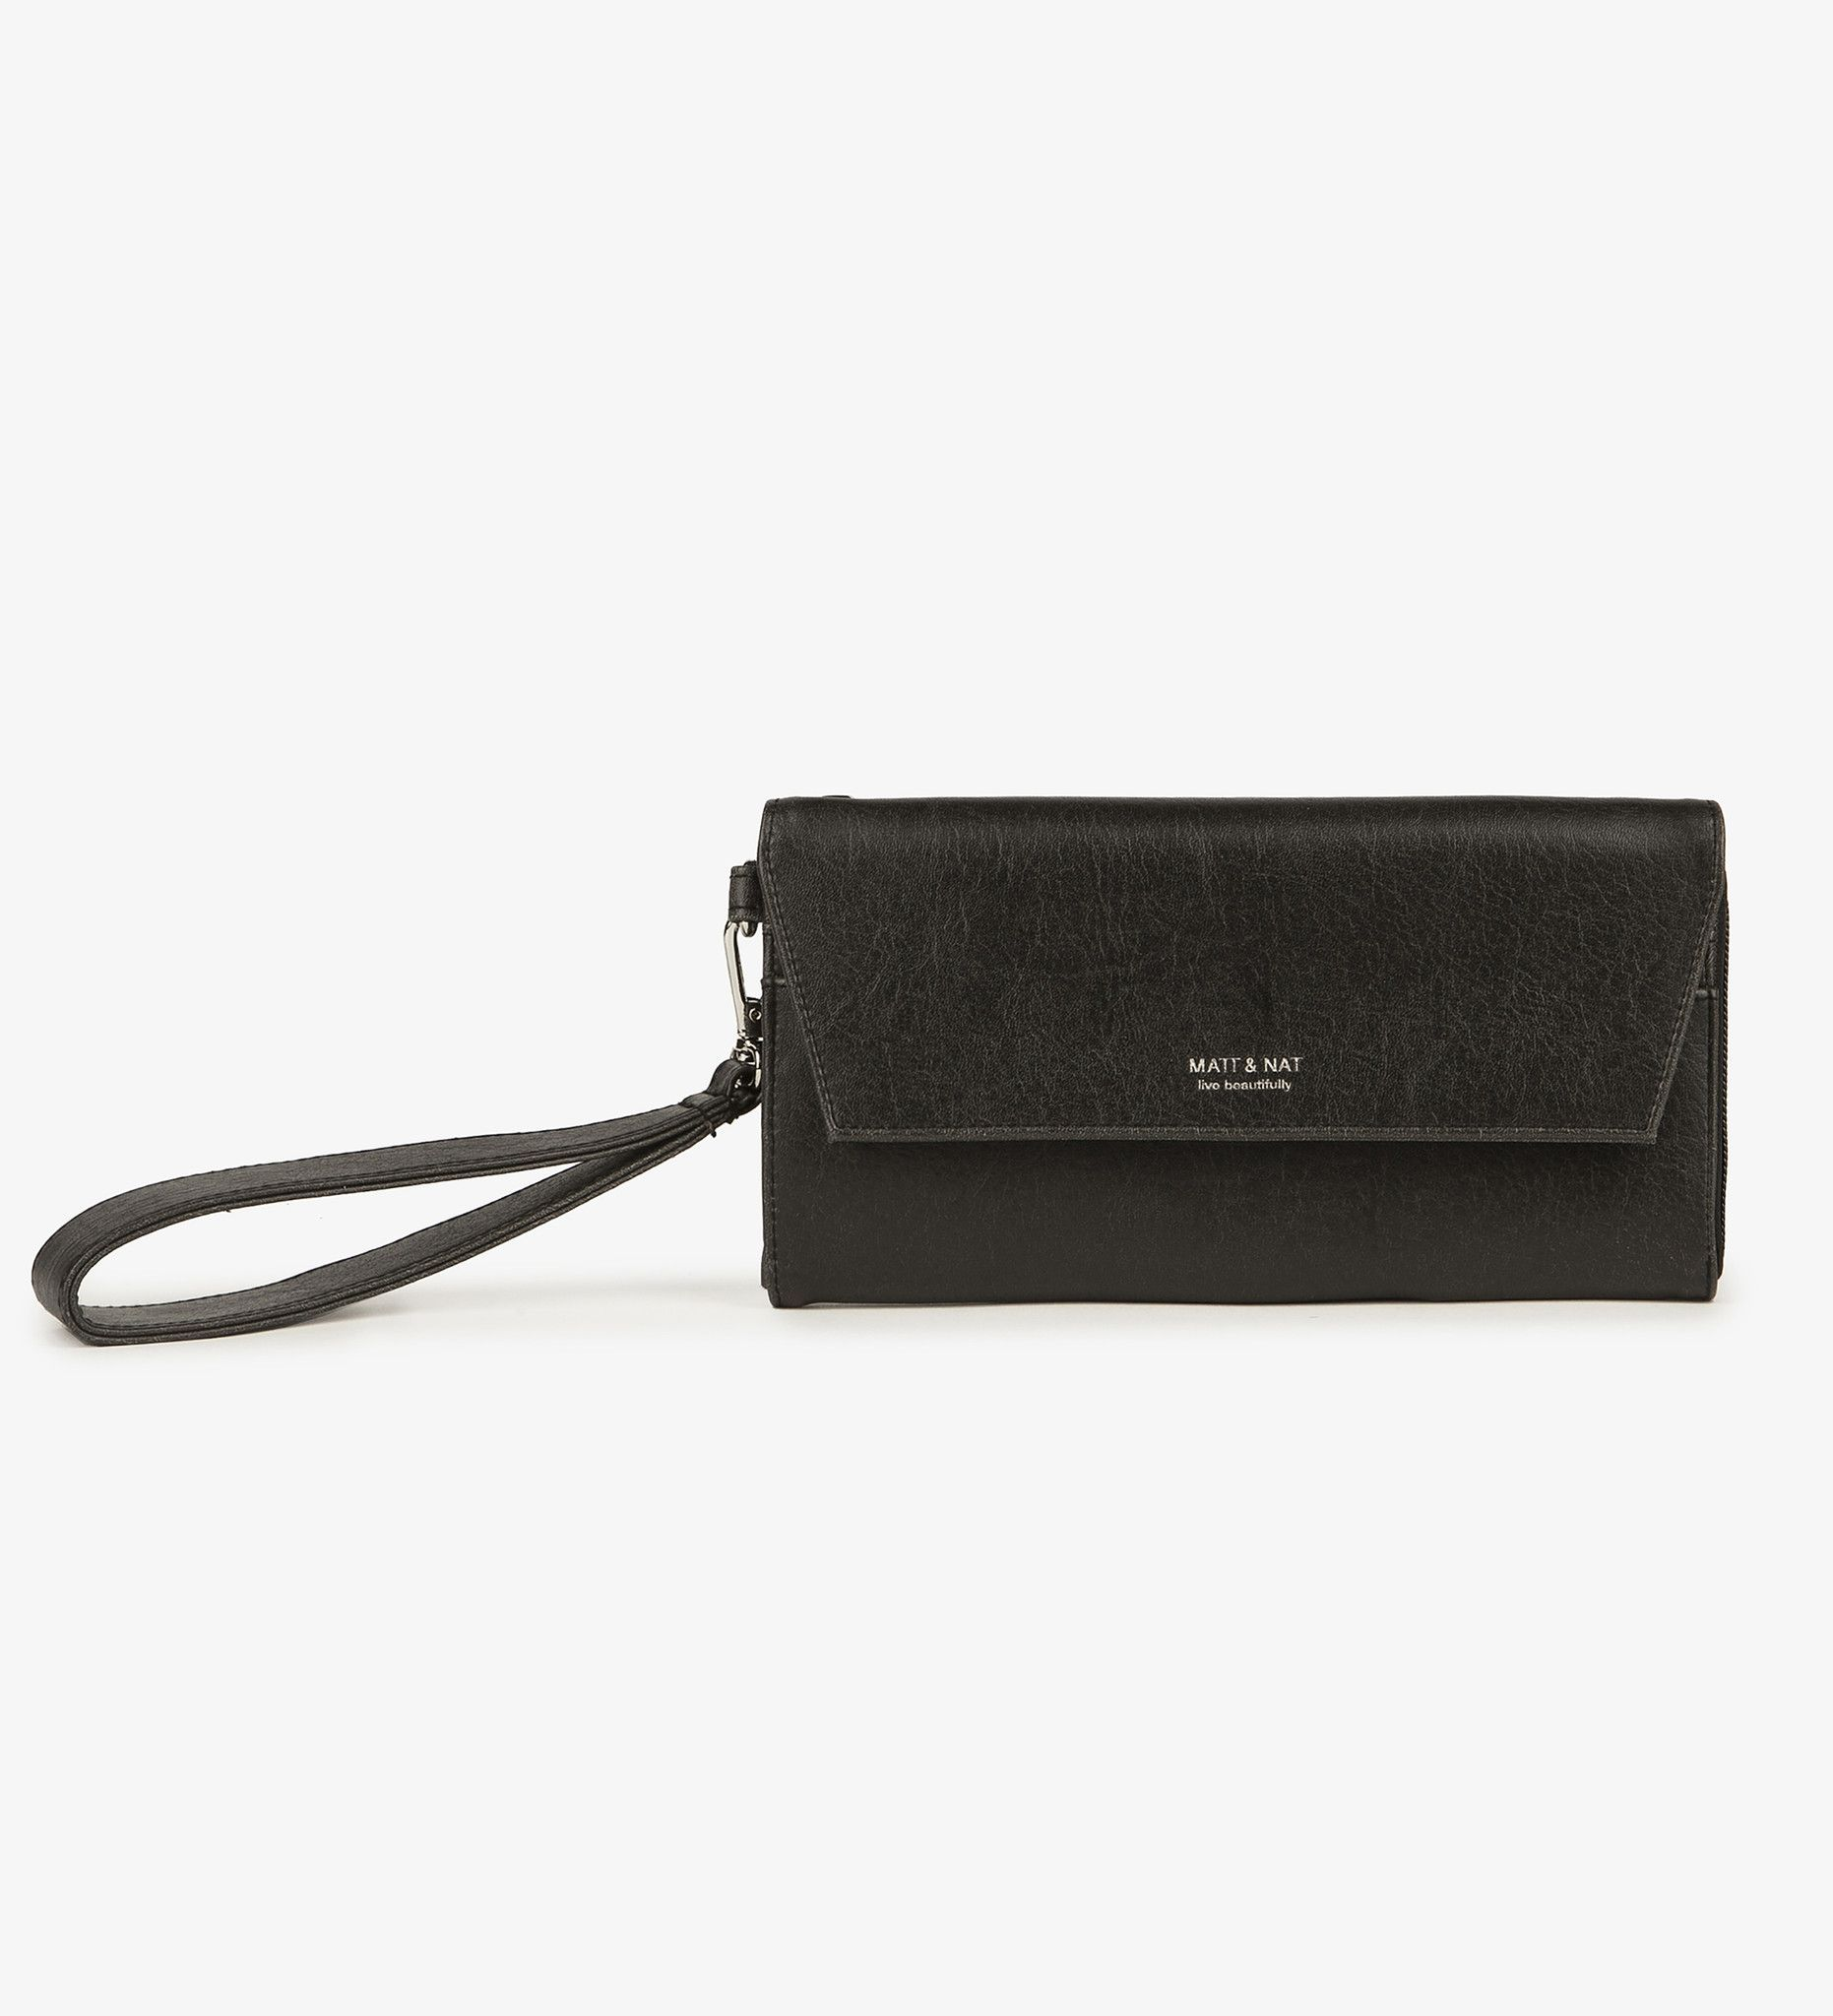 5ff29c4d6cb4 Matt and Nat Mercer Vintage Wristlet Wallet. Stylish Vegan Leather in Black.